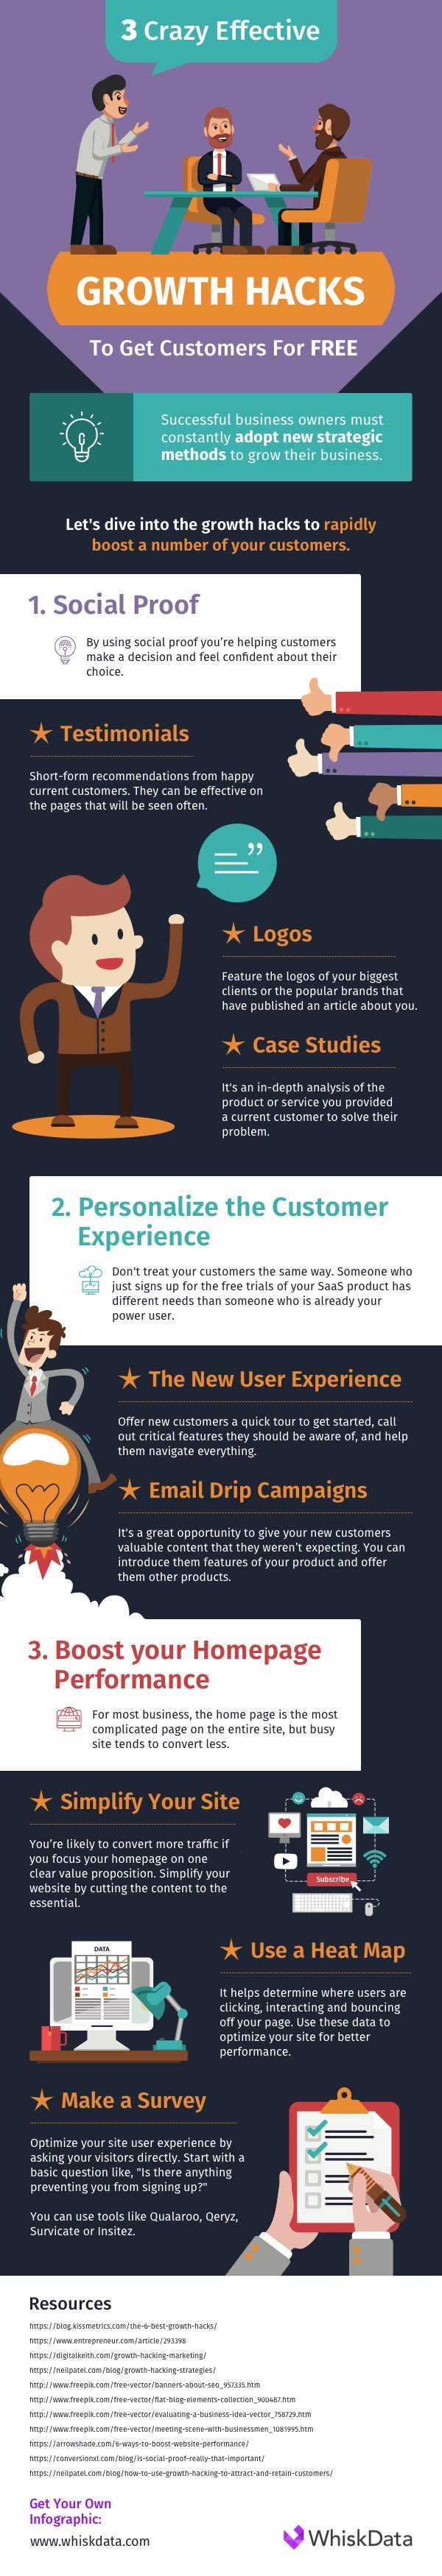 3 Crazy & Effective Growth Hacks to Get More Customers for Free - #Infographic